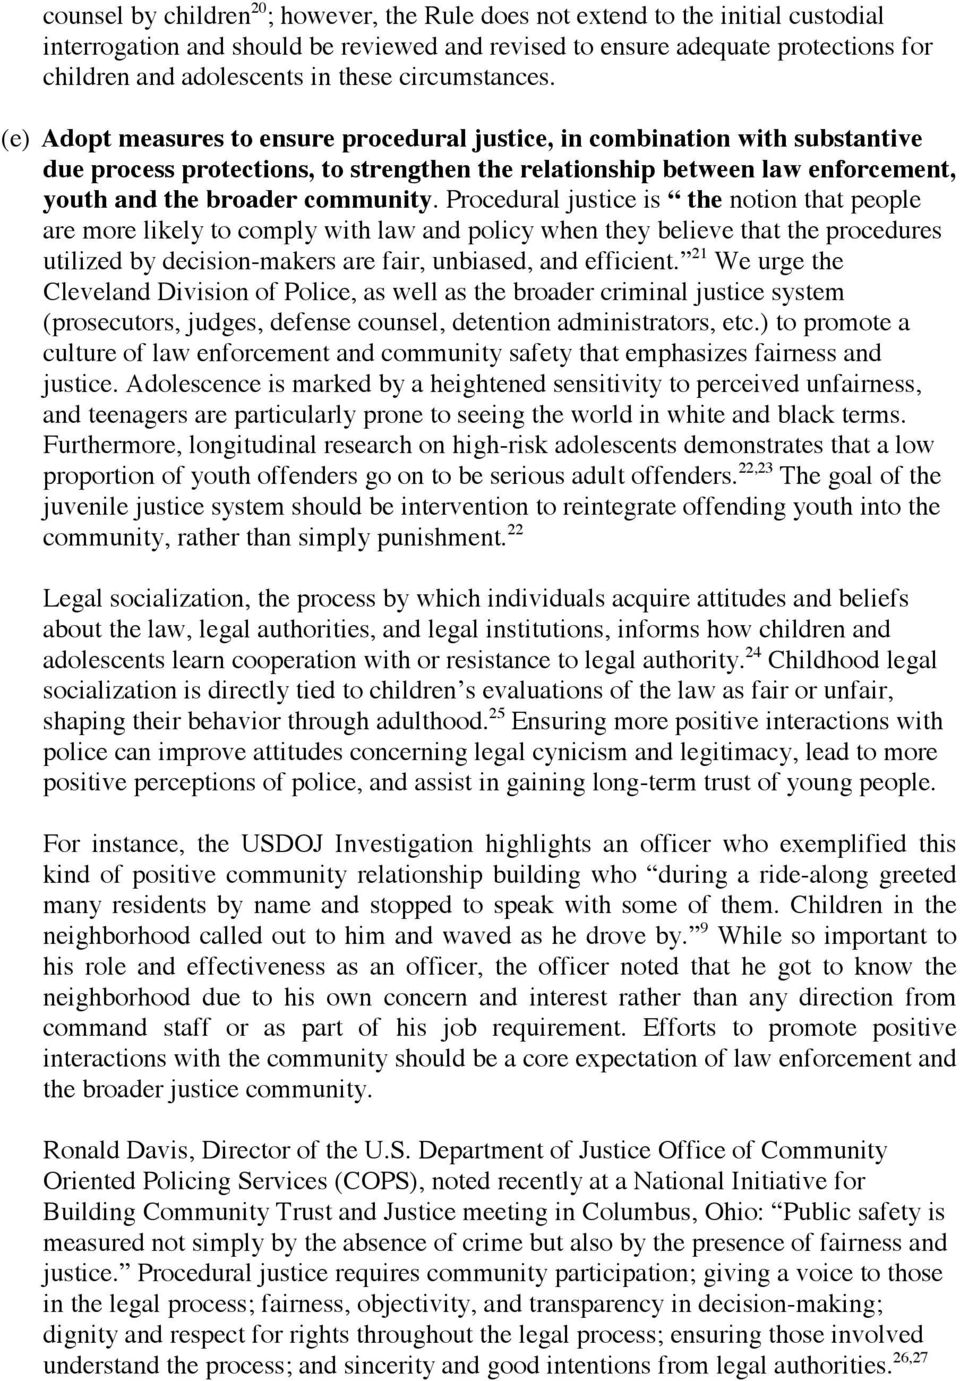 (e) Adopt measures to ensure procedural justice, in combination with substantive due process protections, to strengthen the relationship between law enforcement, youth and the broader community.